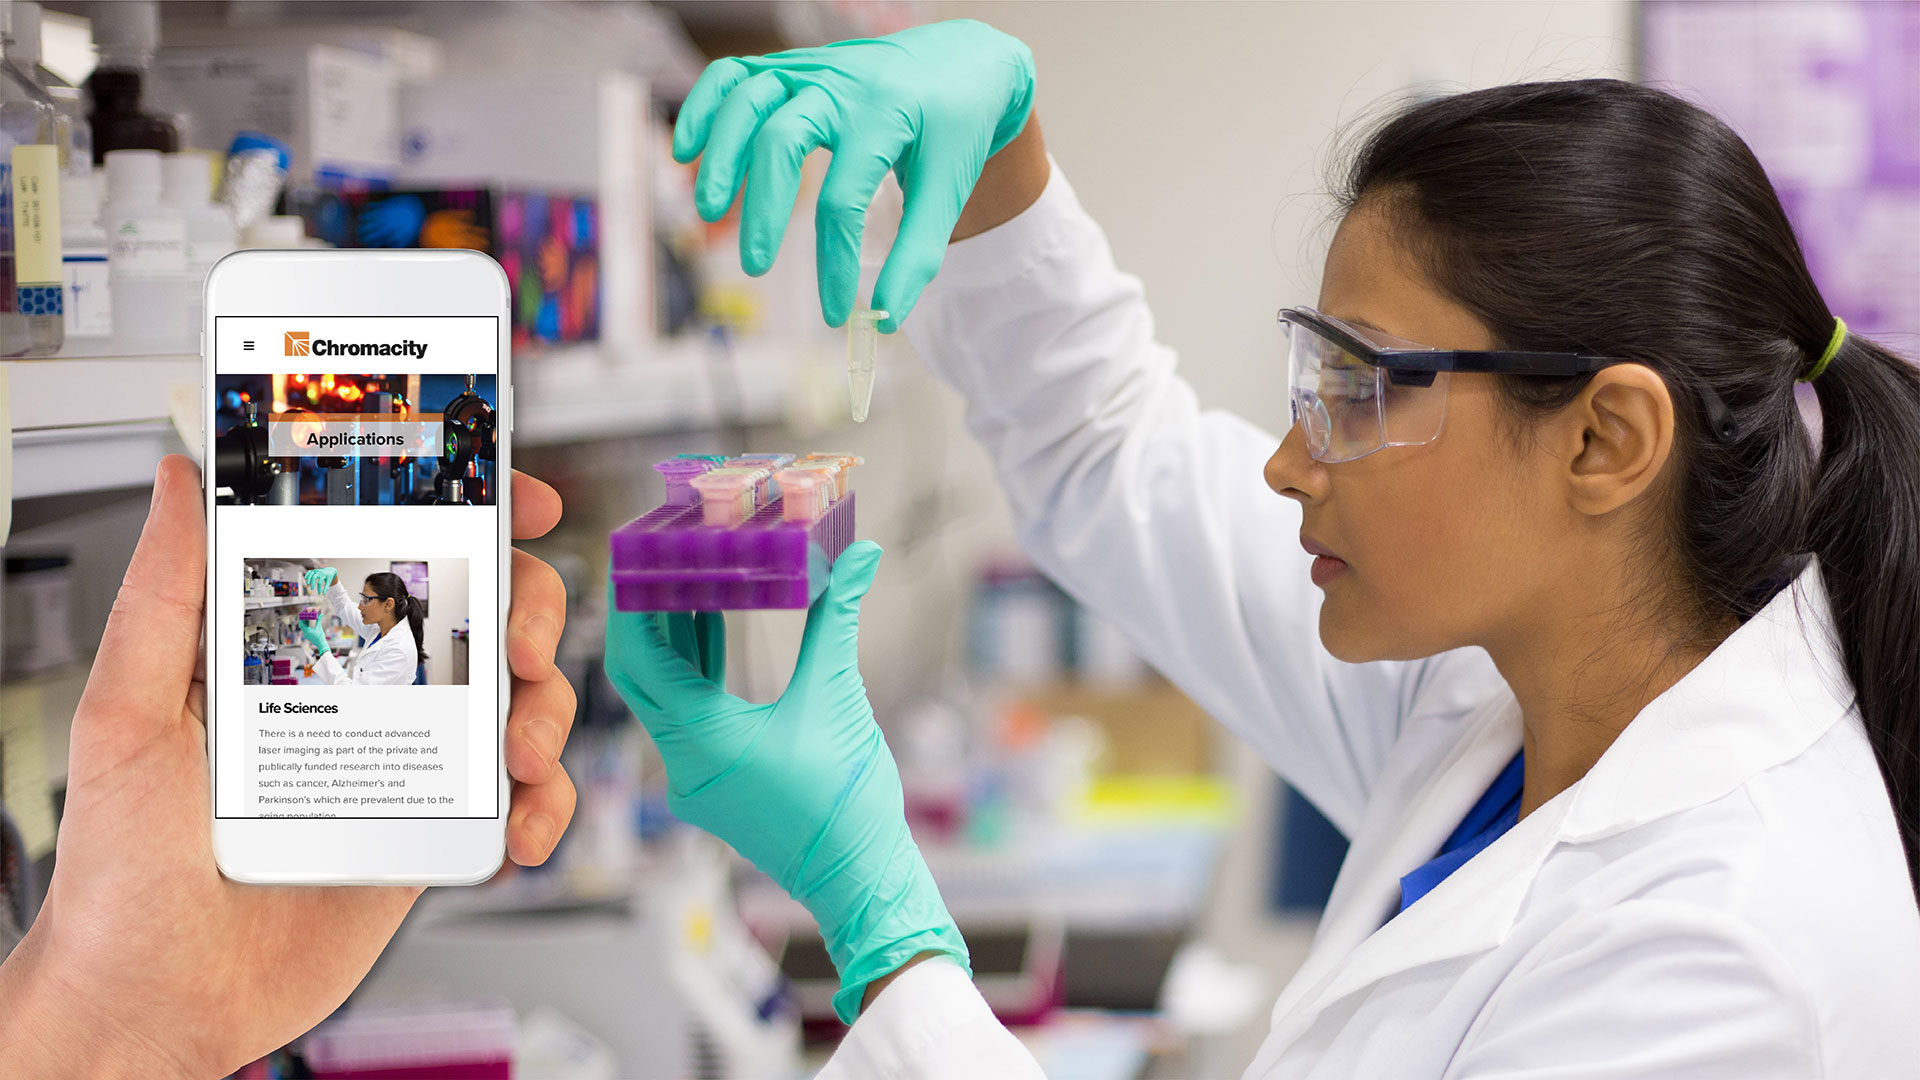 iPhone displaying Chromacity website against backdrop of scientist with test tubes